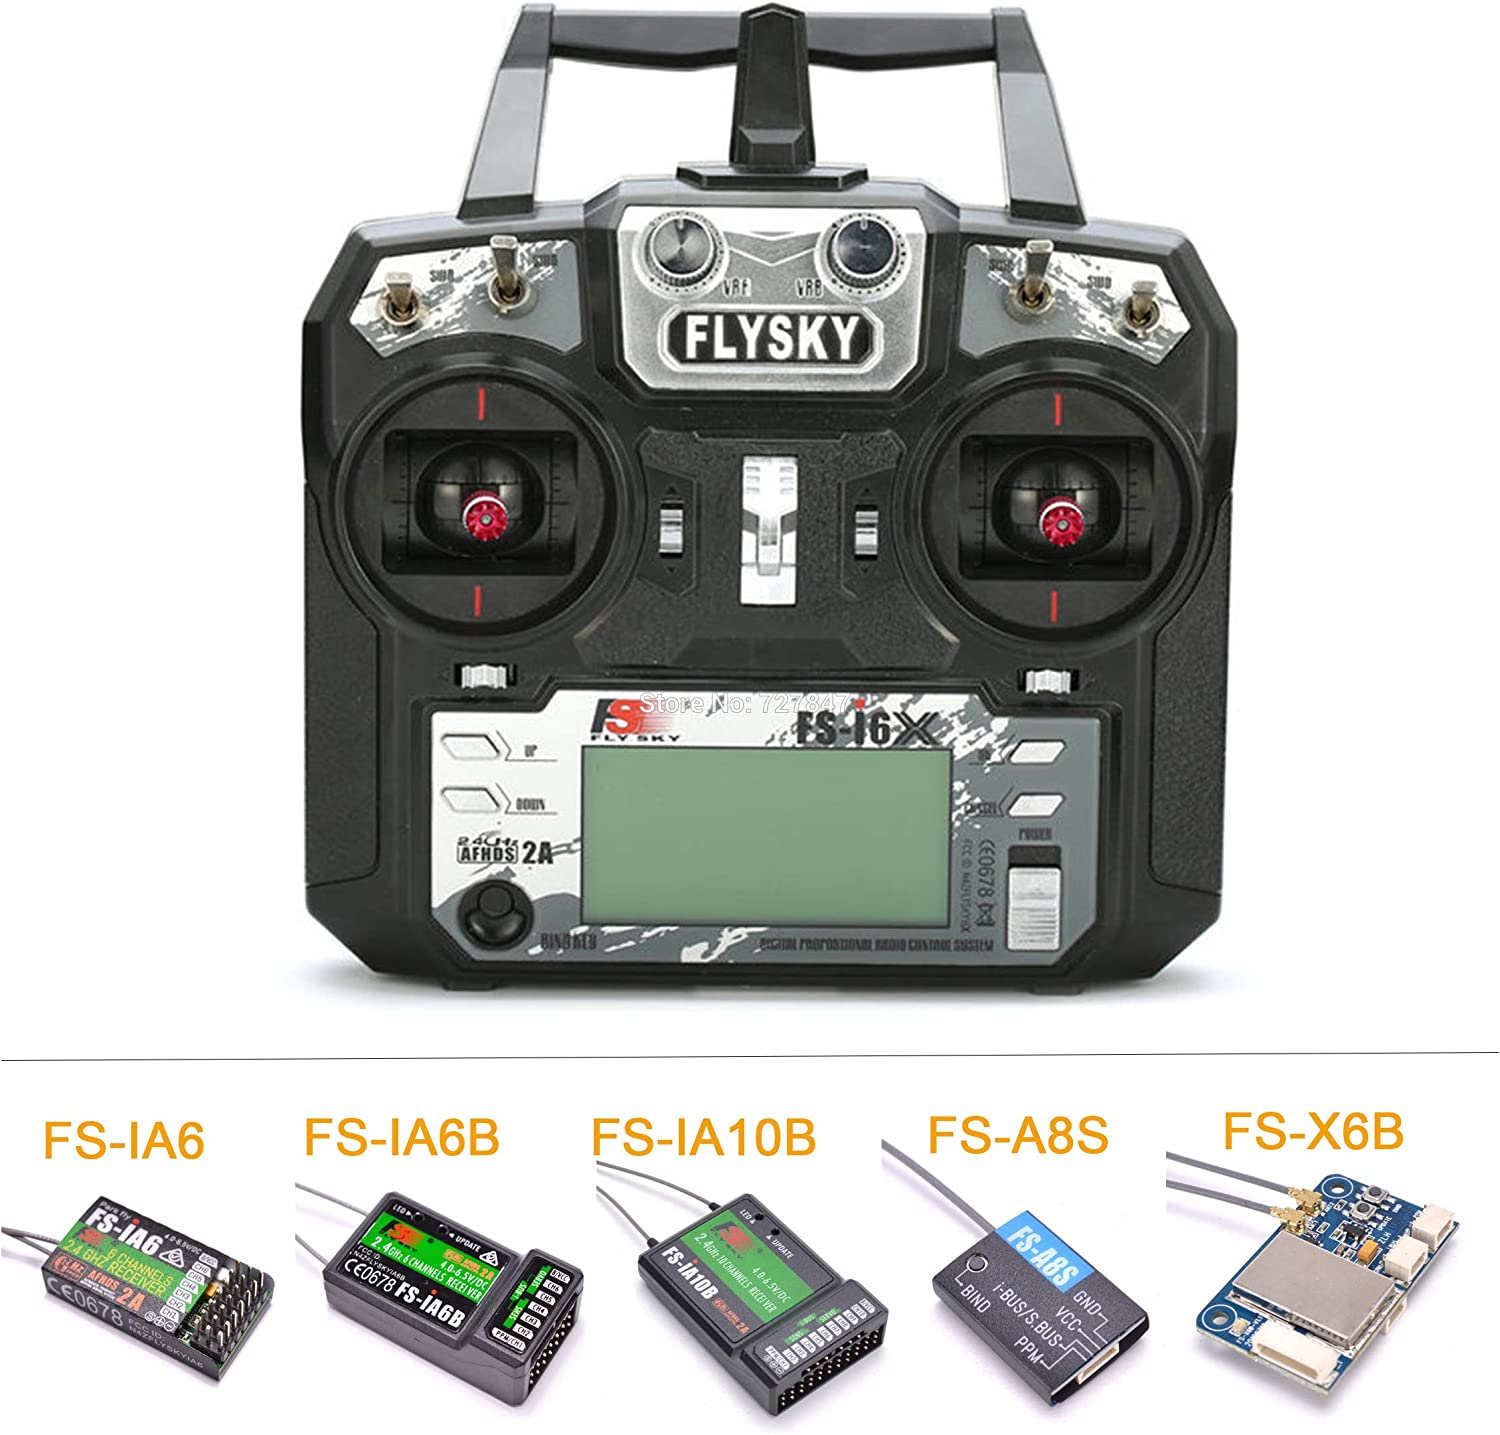 Laliva Flysky FS-i6X I6X 2.4GHz 10CH AFHDS 2A RC Transmitter with FS-iA6B   FS-iA10B   FS-X6B  FS-A8S   FS-IA6 Receiver for RC Airplane - (color  Only X6B Receiver)